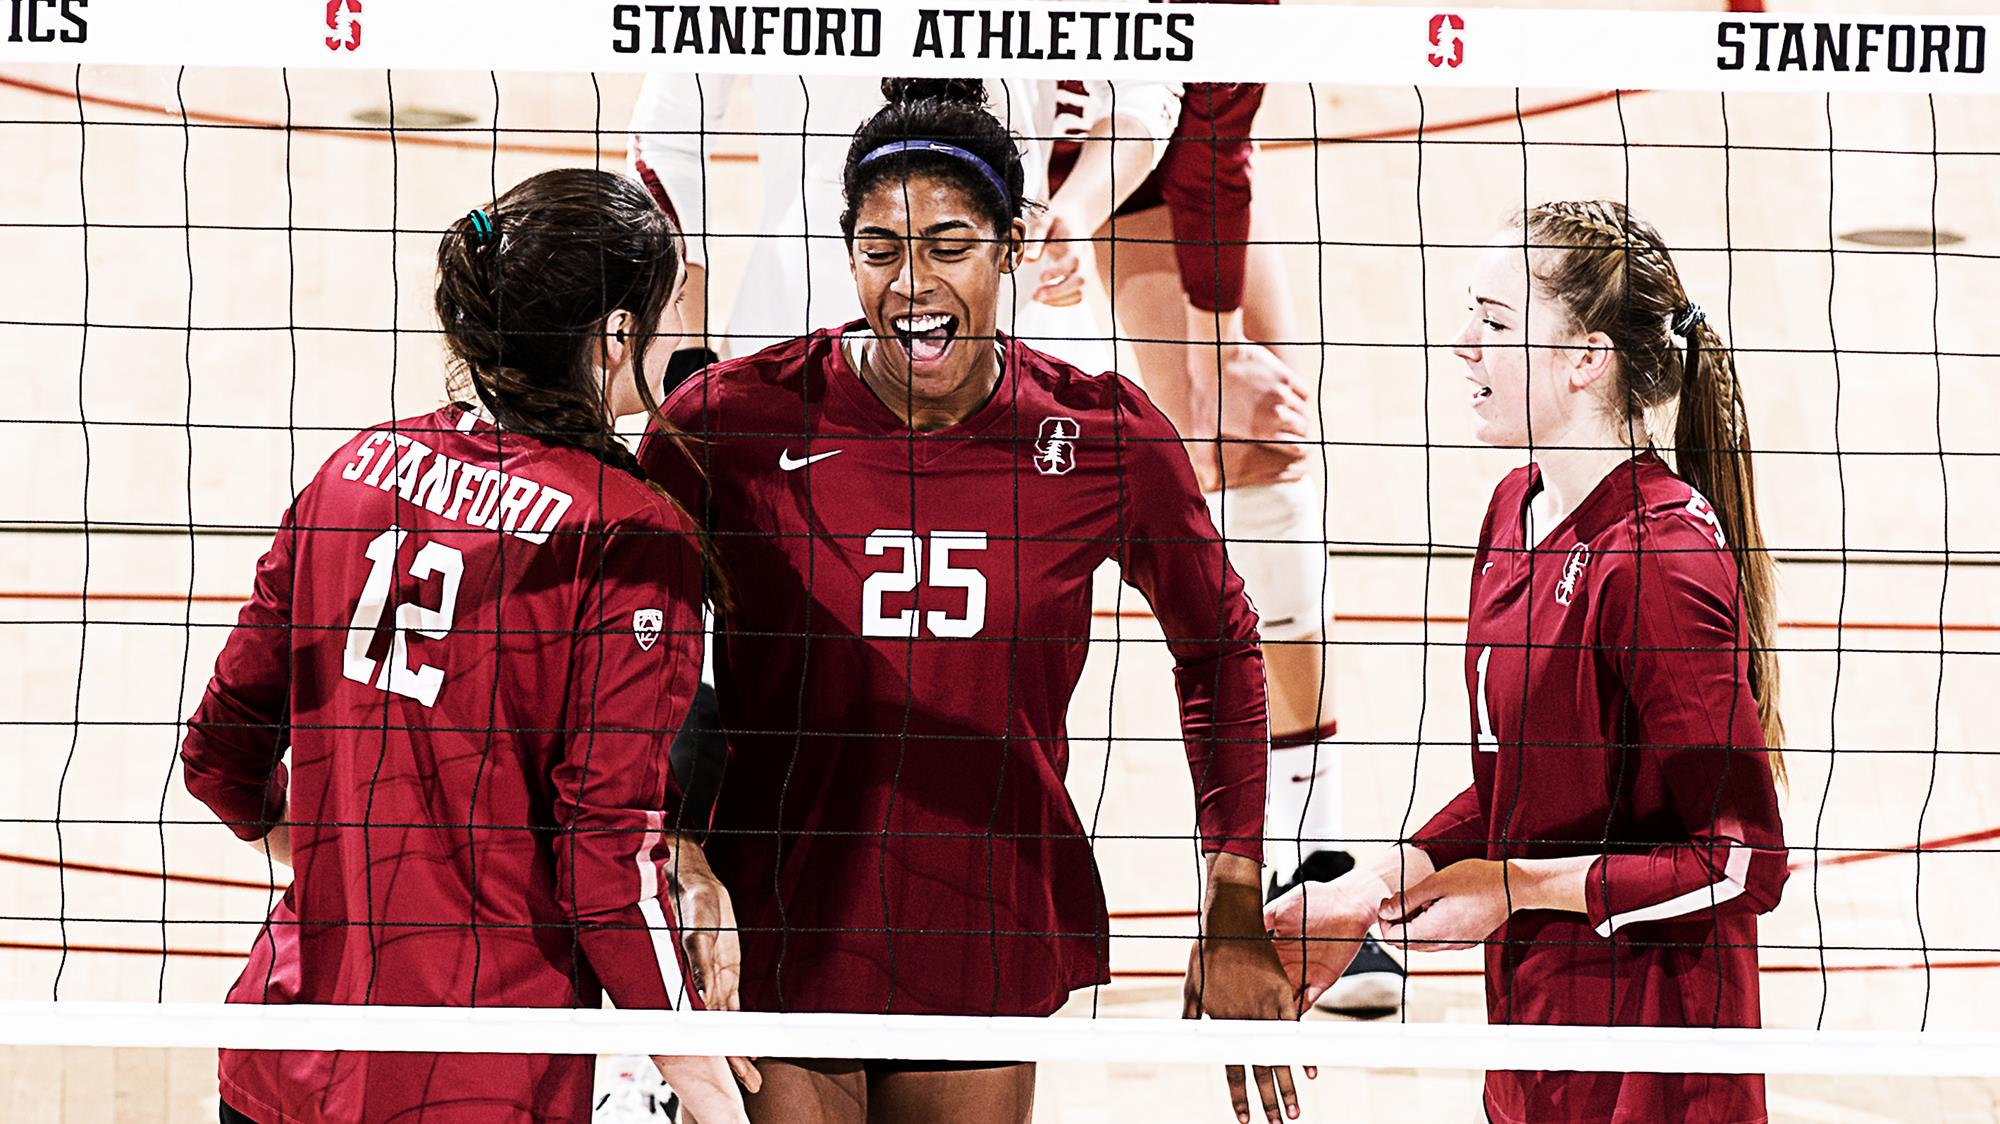 Stanford Shakes Up Lineup vs WVU with Courtney Bowen & Mackenzie Fidelak